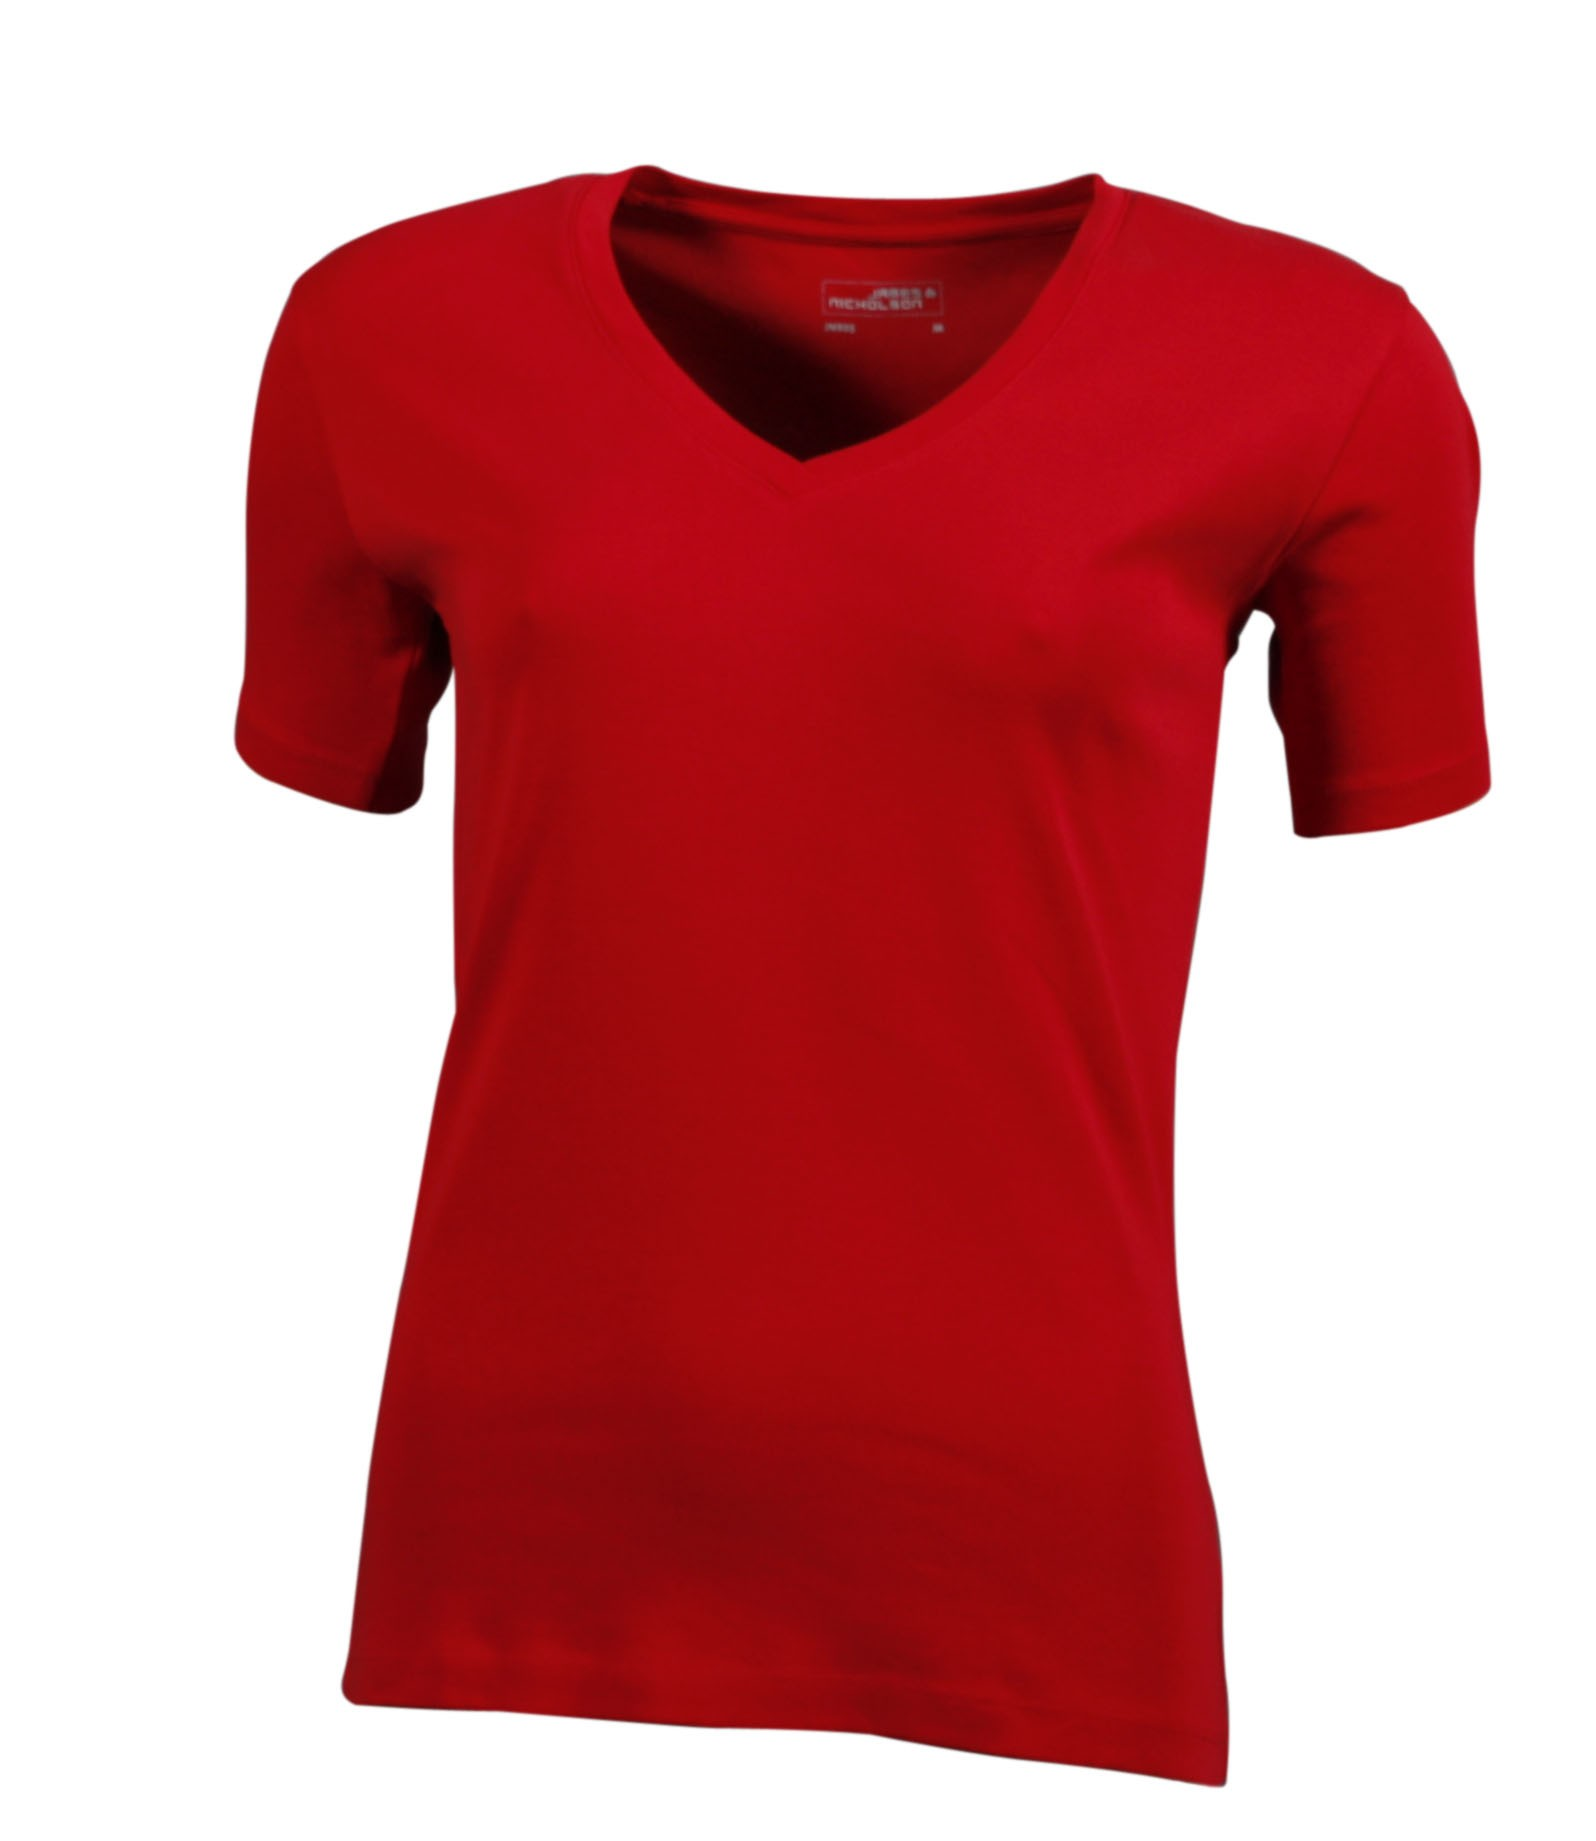 J&N ladies' - T V-neck